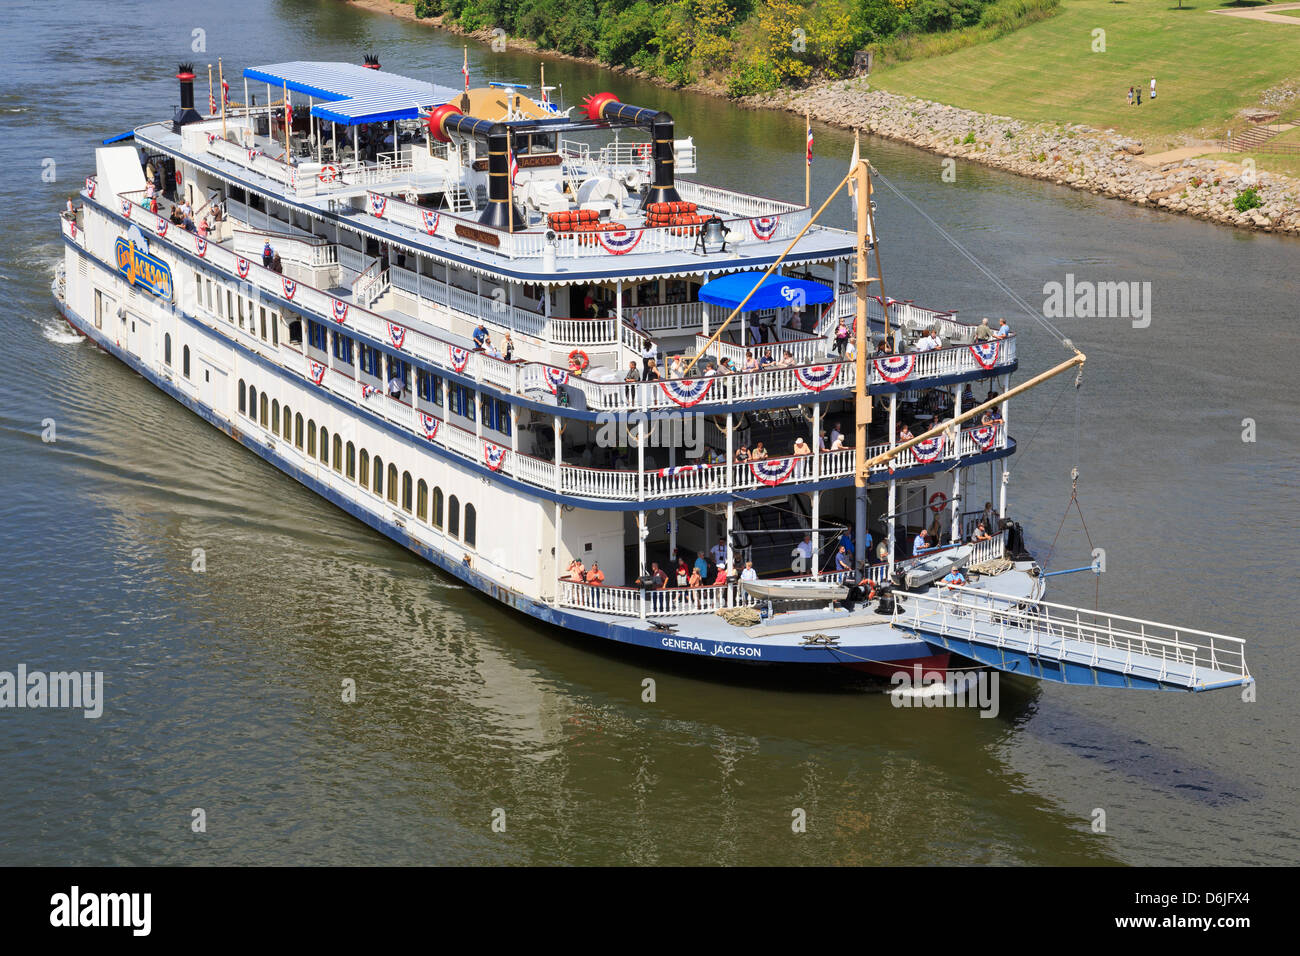 General Jackson Boat Tour Nashville